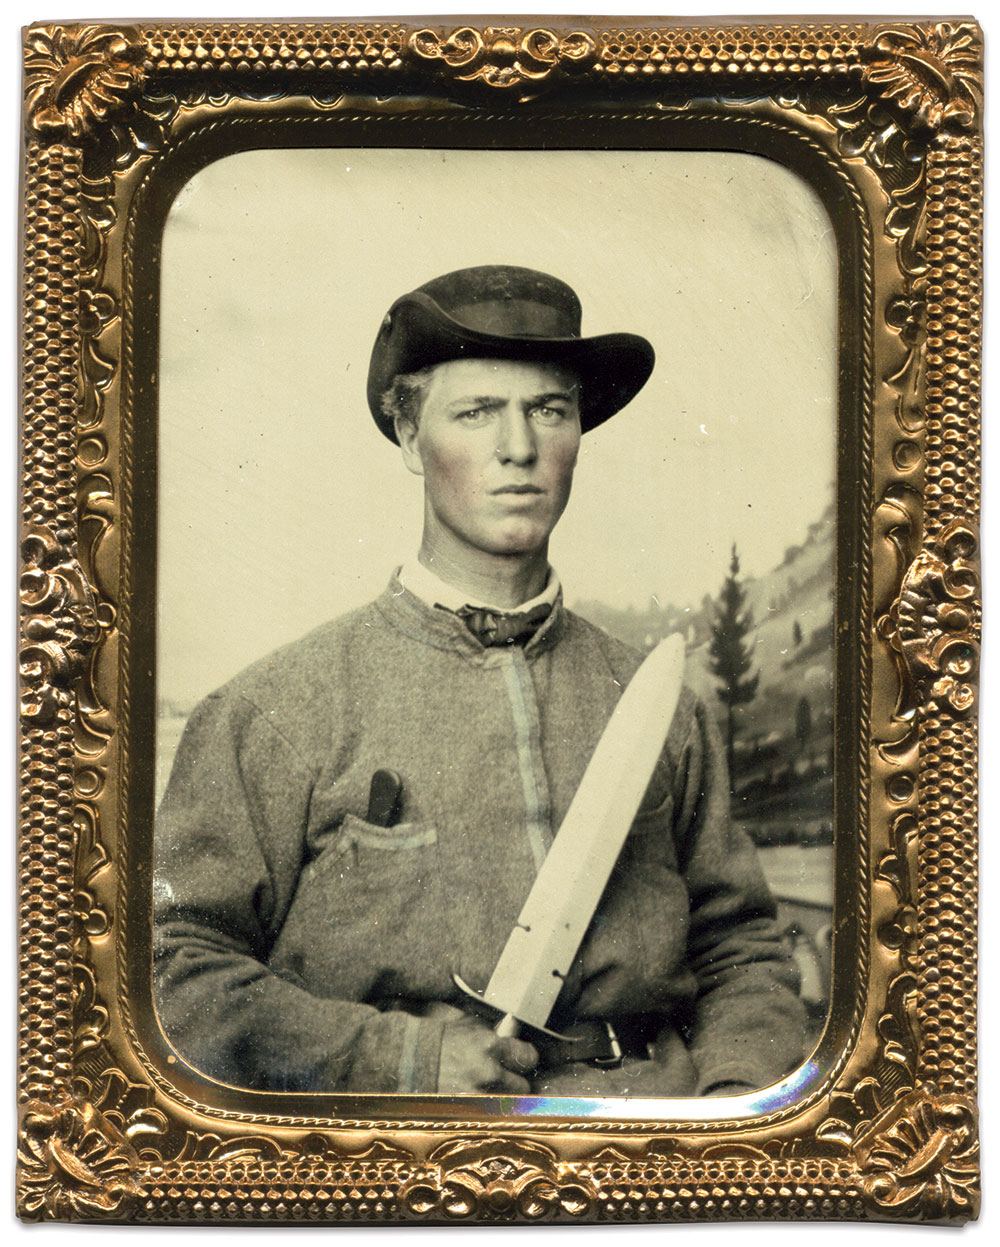 Ninth-plate tintype by an anonymous photographer. Brian Boeve Collection.